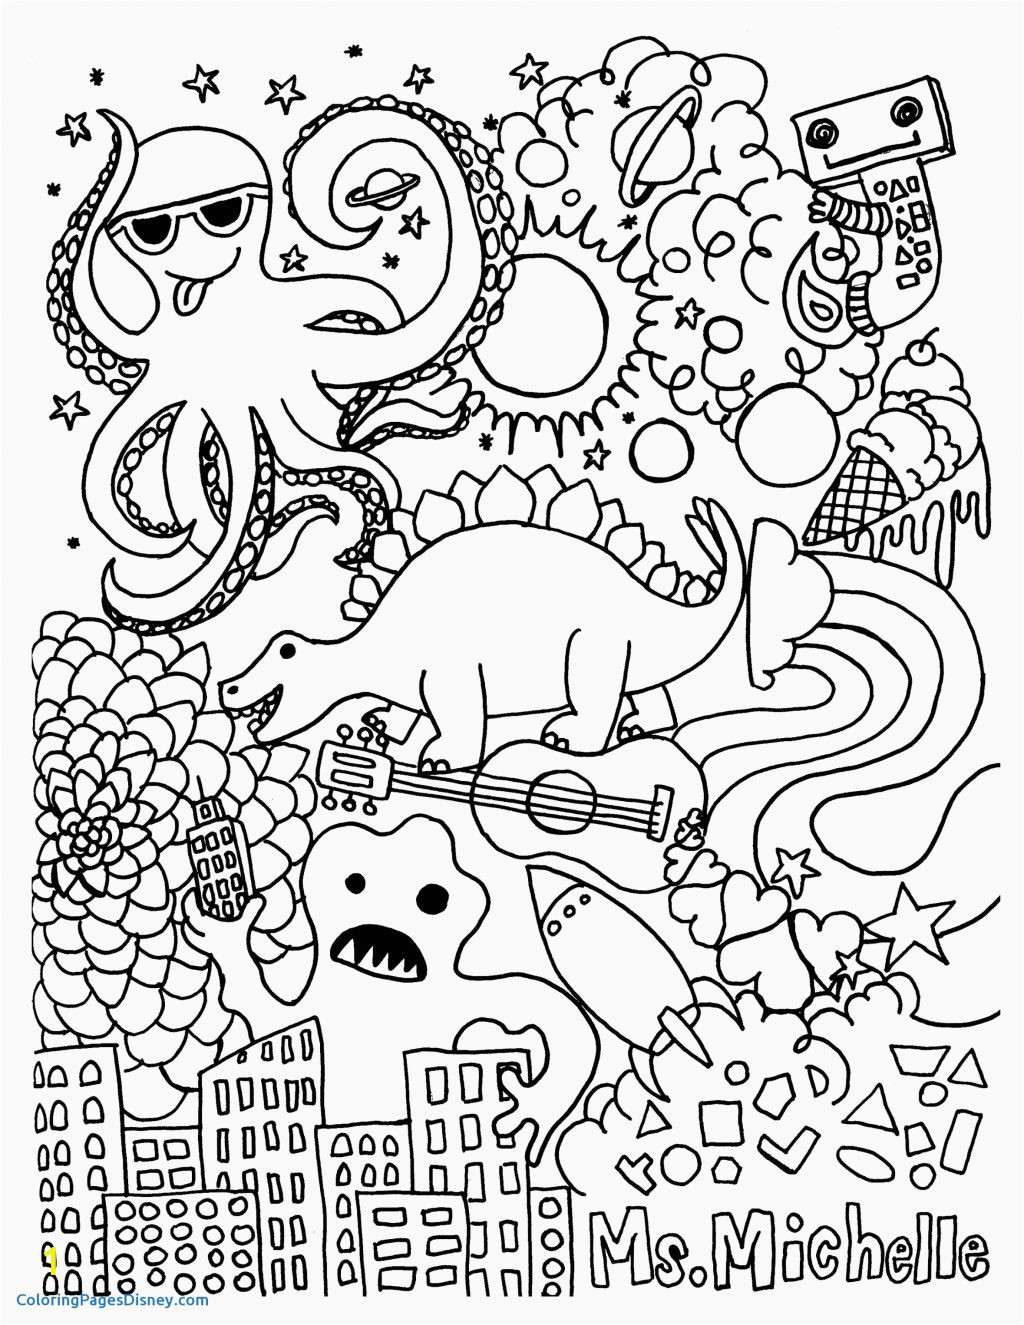 cars coloring sheets to print johanna basford the enchanted forest easy pages shimmer and shine children in need colouring valentines for kids cute disney anime millie marotta wildlife 1024x1325